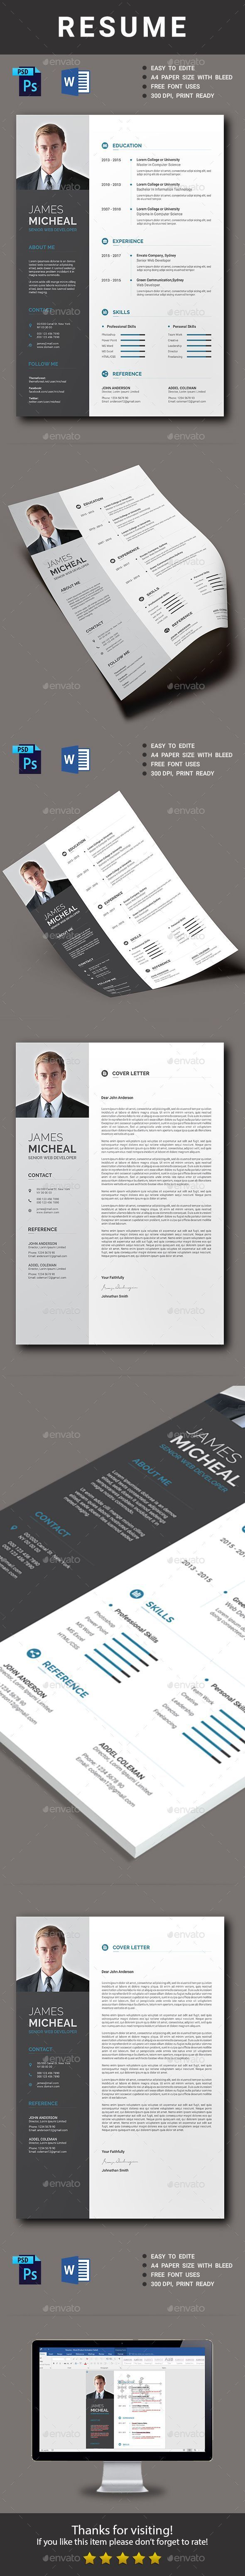 Resume 409 best ResumeInterview images on Pinterest